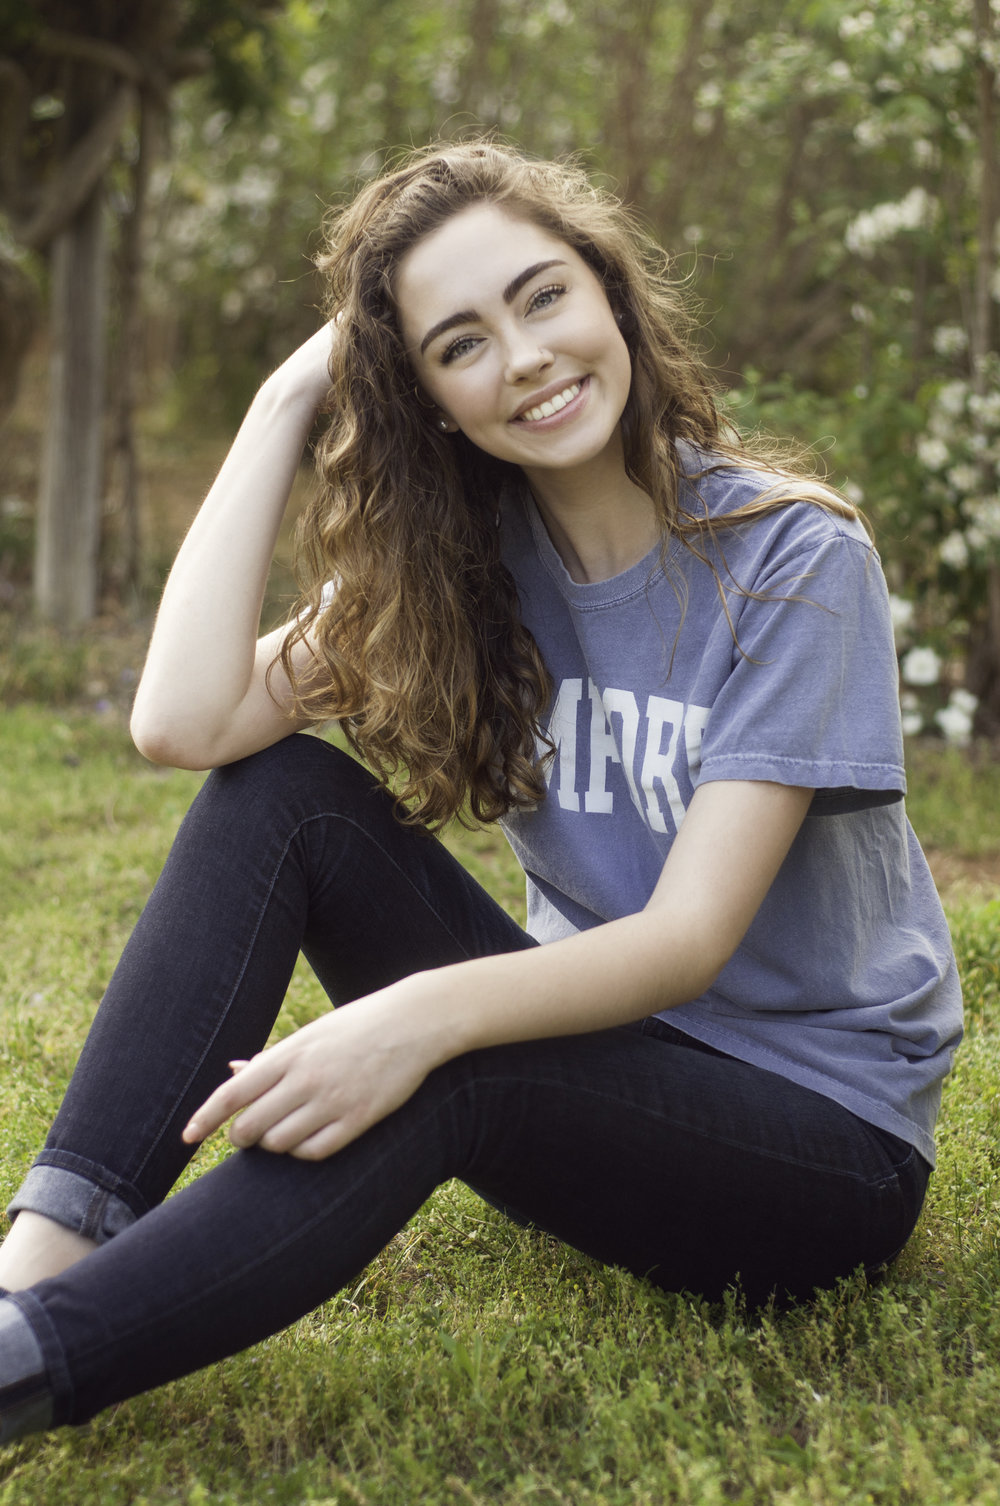 Norcross High School Senior